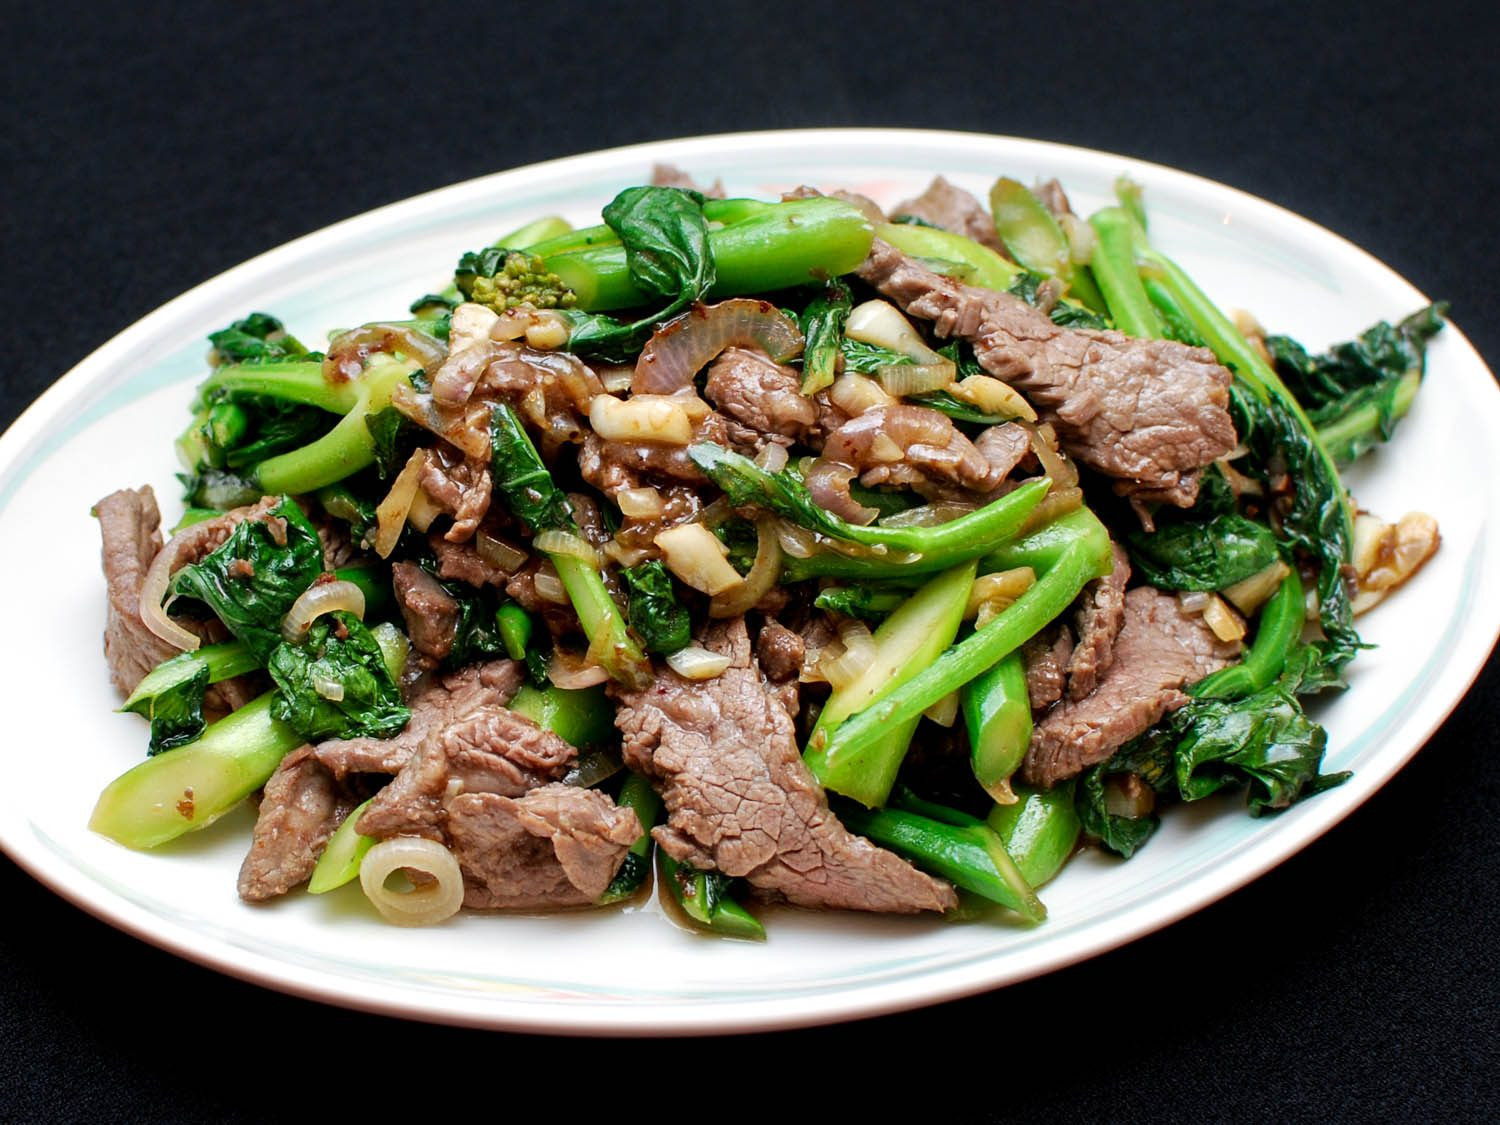 Chinese Beef Recipes  Stir Fried Beef With Chinese Broccoli Recipe